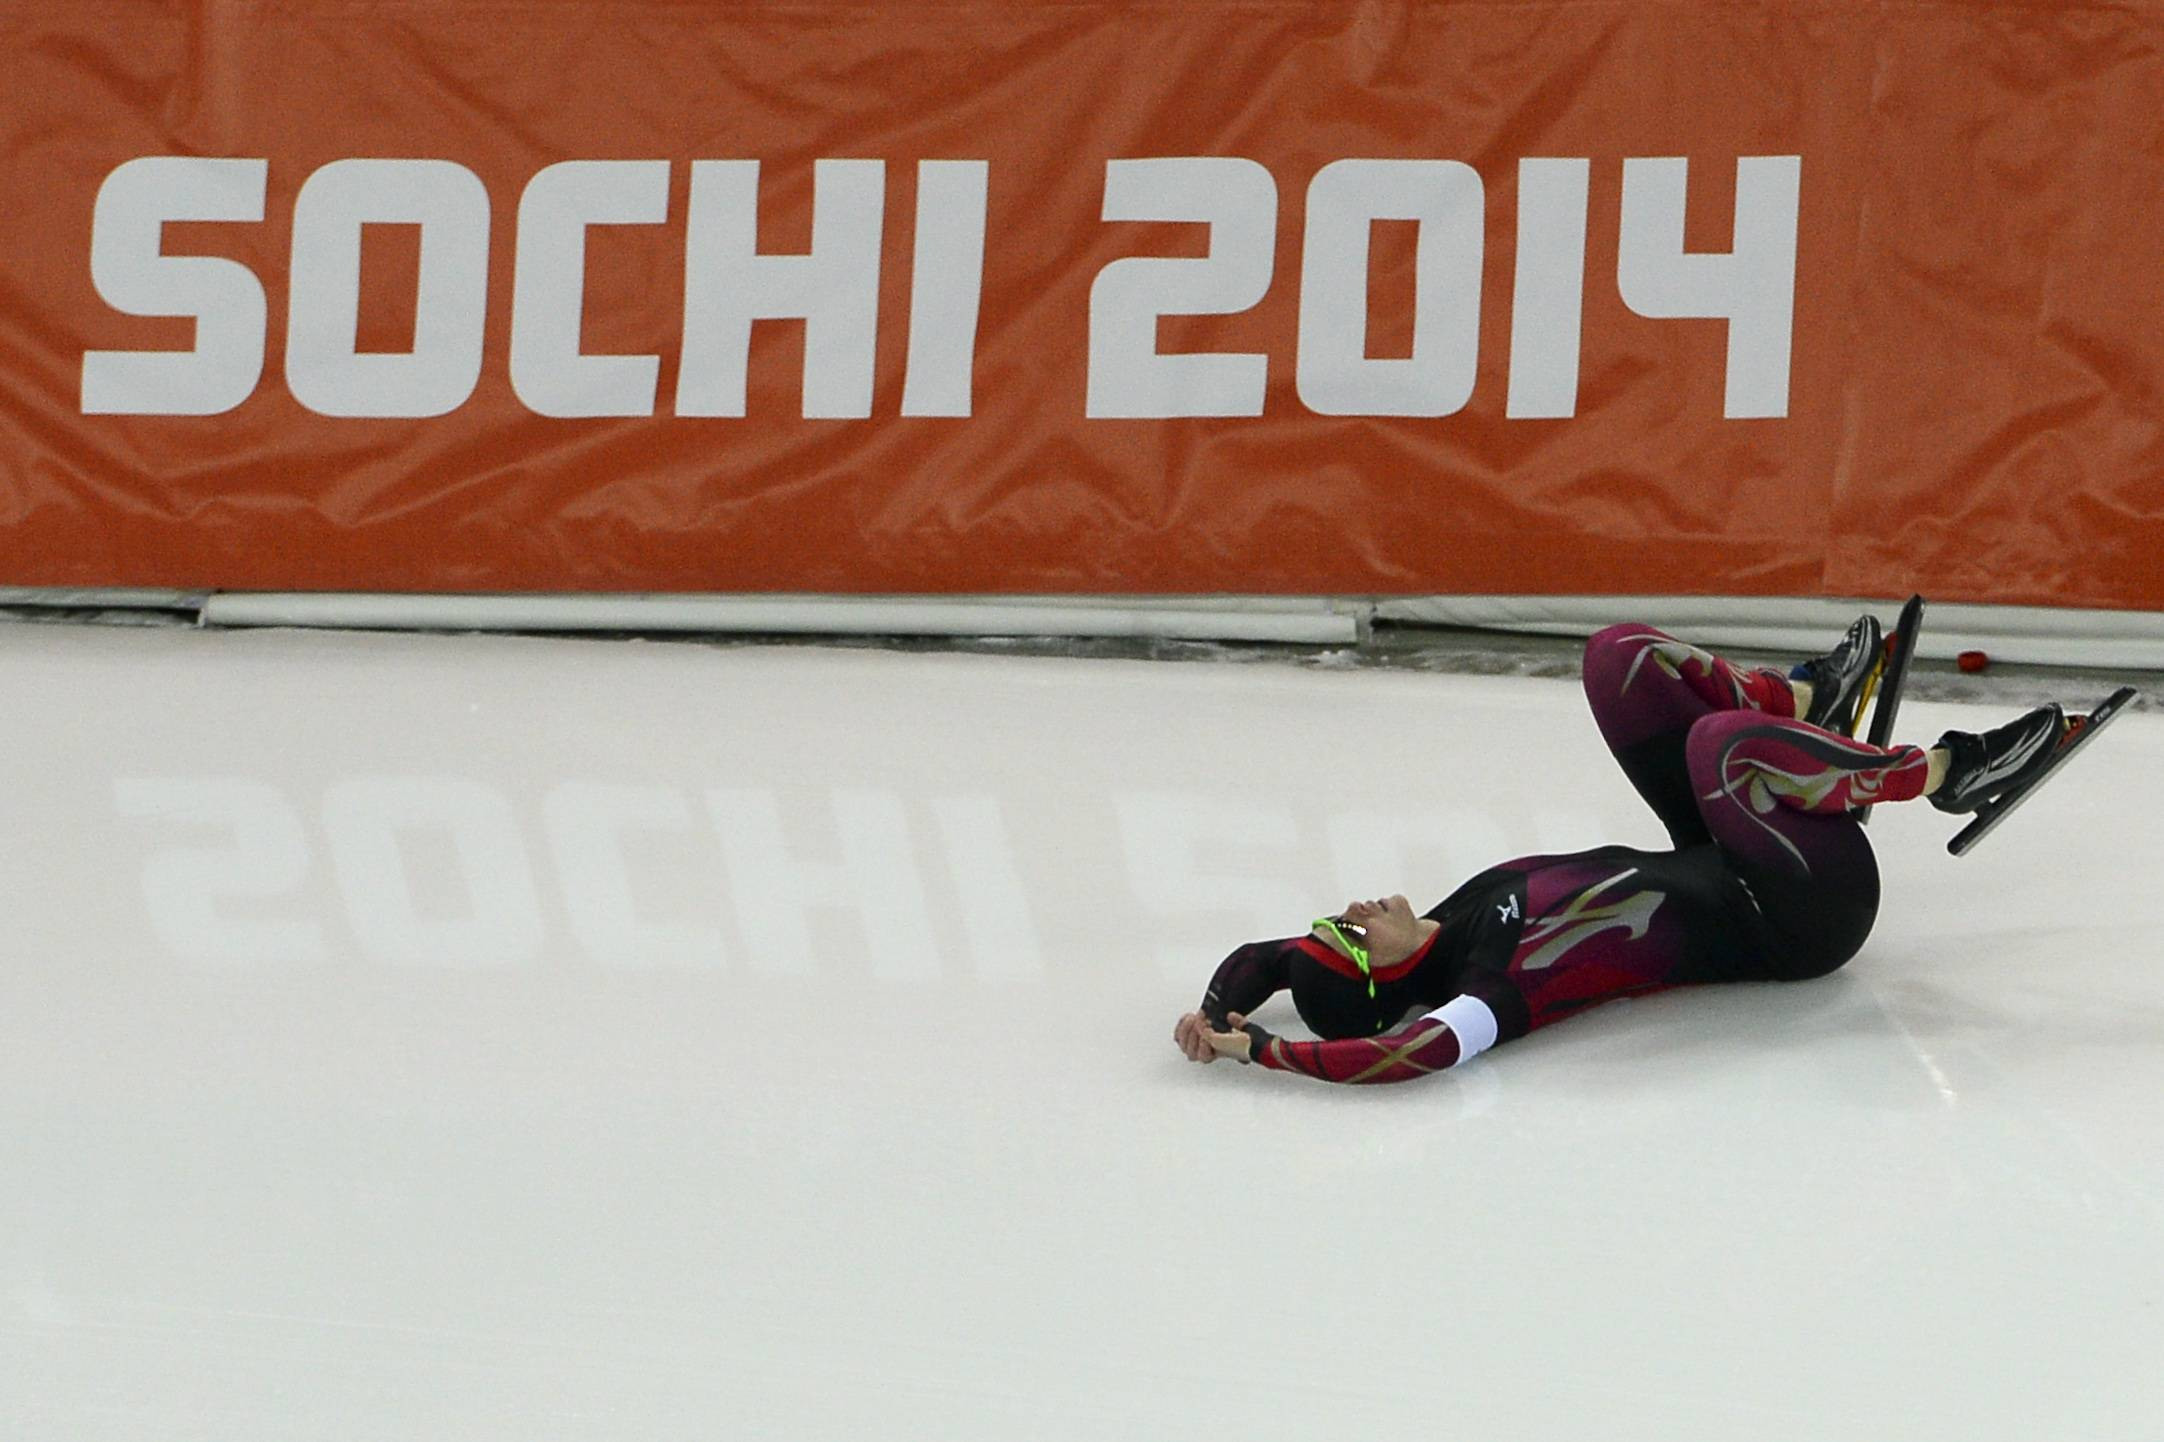 Monique Angermueller of Germany crashes during the women's 1,000-meter speedskating race at the Adler Arena Skating Center during the 2014 Winter Olympics in Sochi, Russia, Thursday, Feb. 13, 2014.